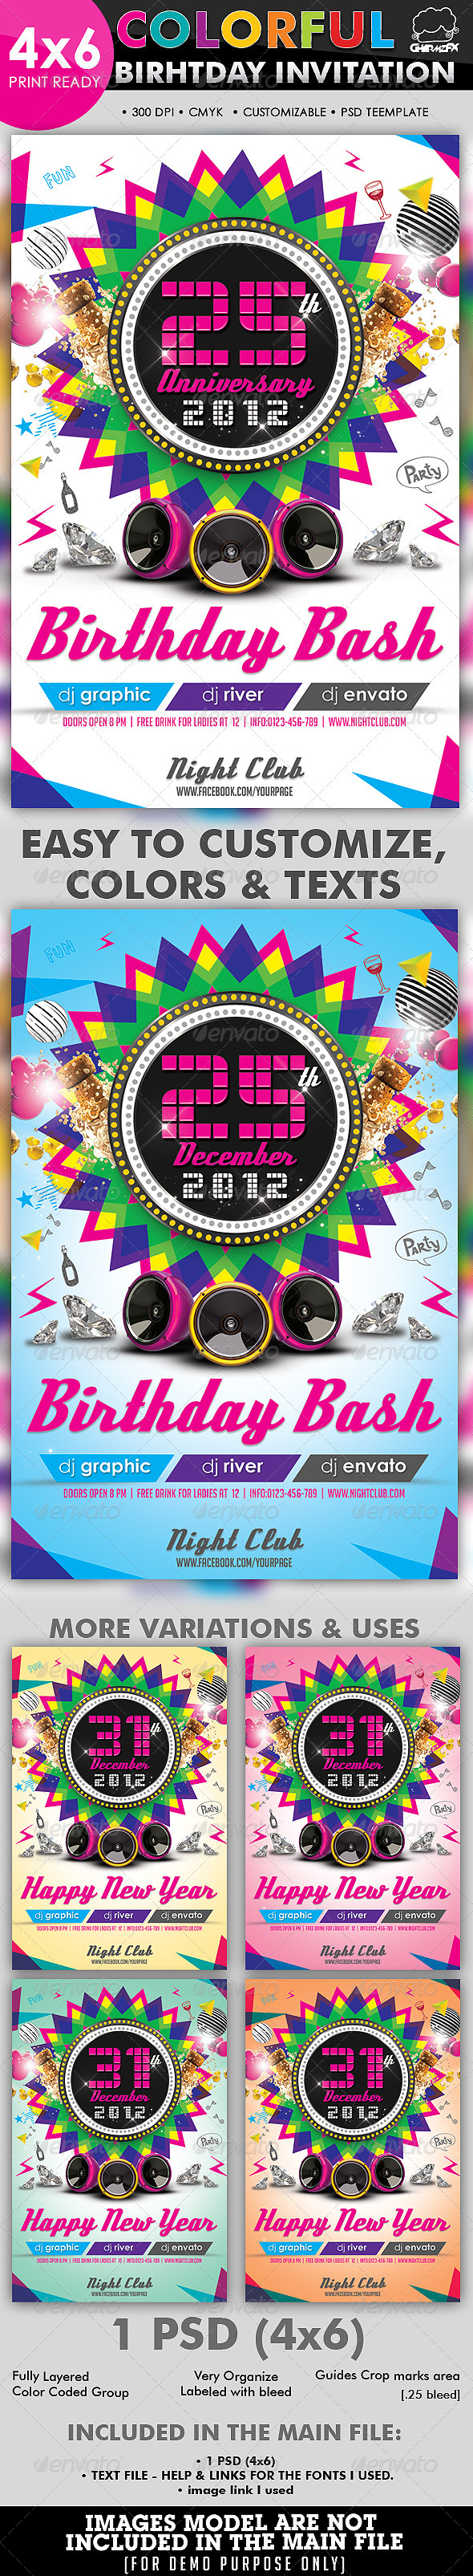 Colorful Birthday Invitation Flyer Template - Clubs & Parties Events